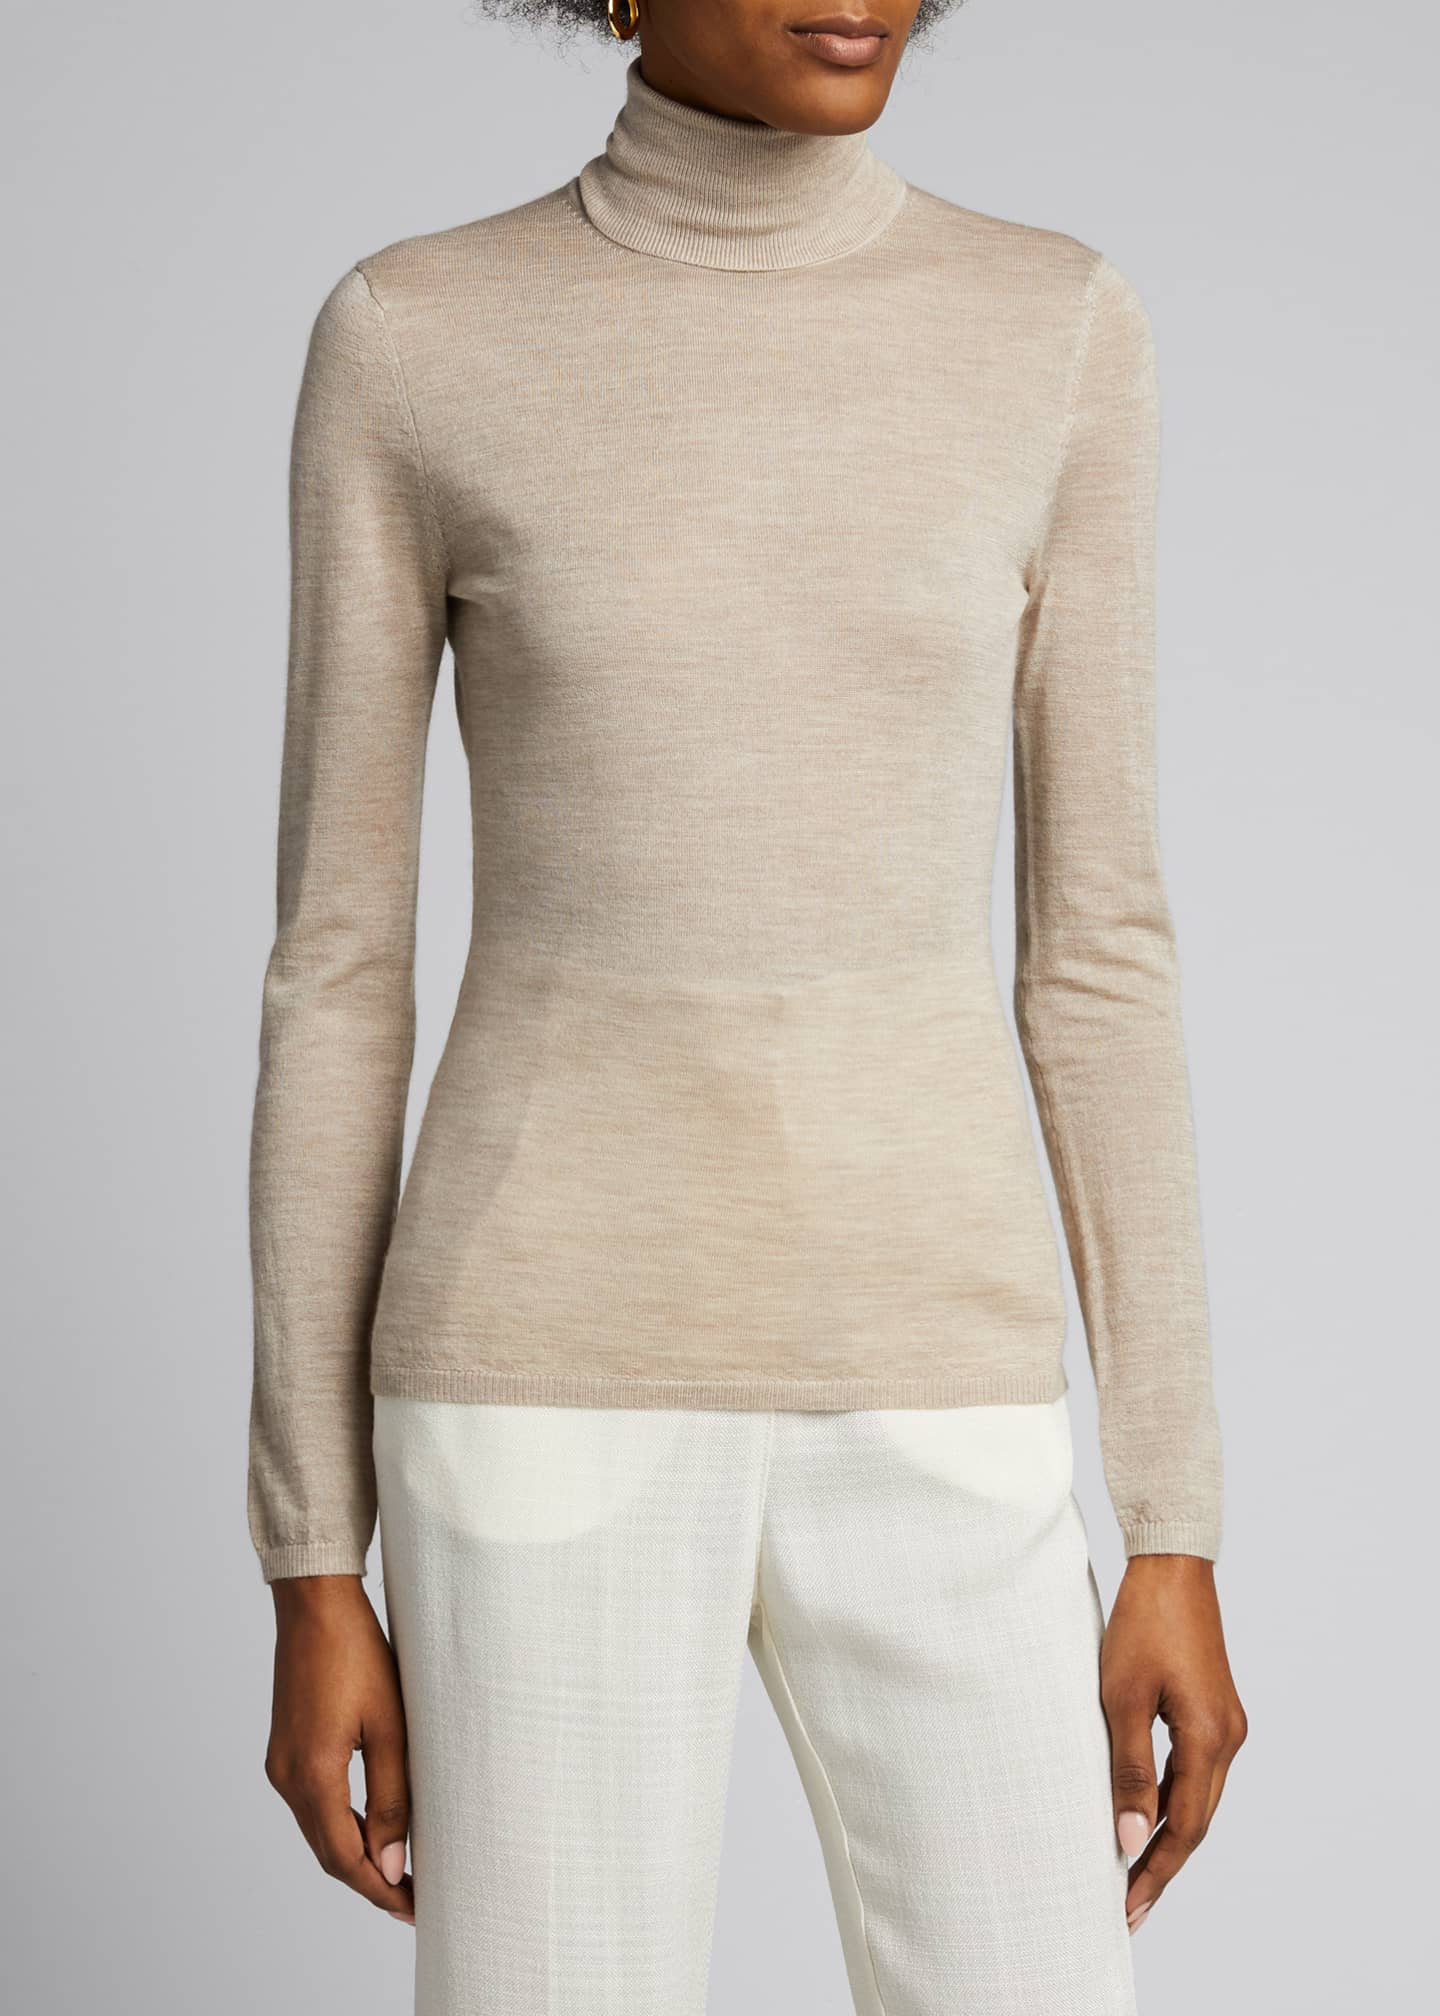 Image 3 of 5: Costa Cashmere-Silk Turtleneck Sweater